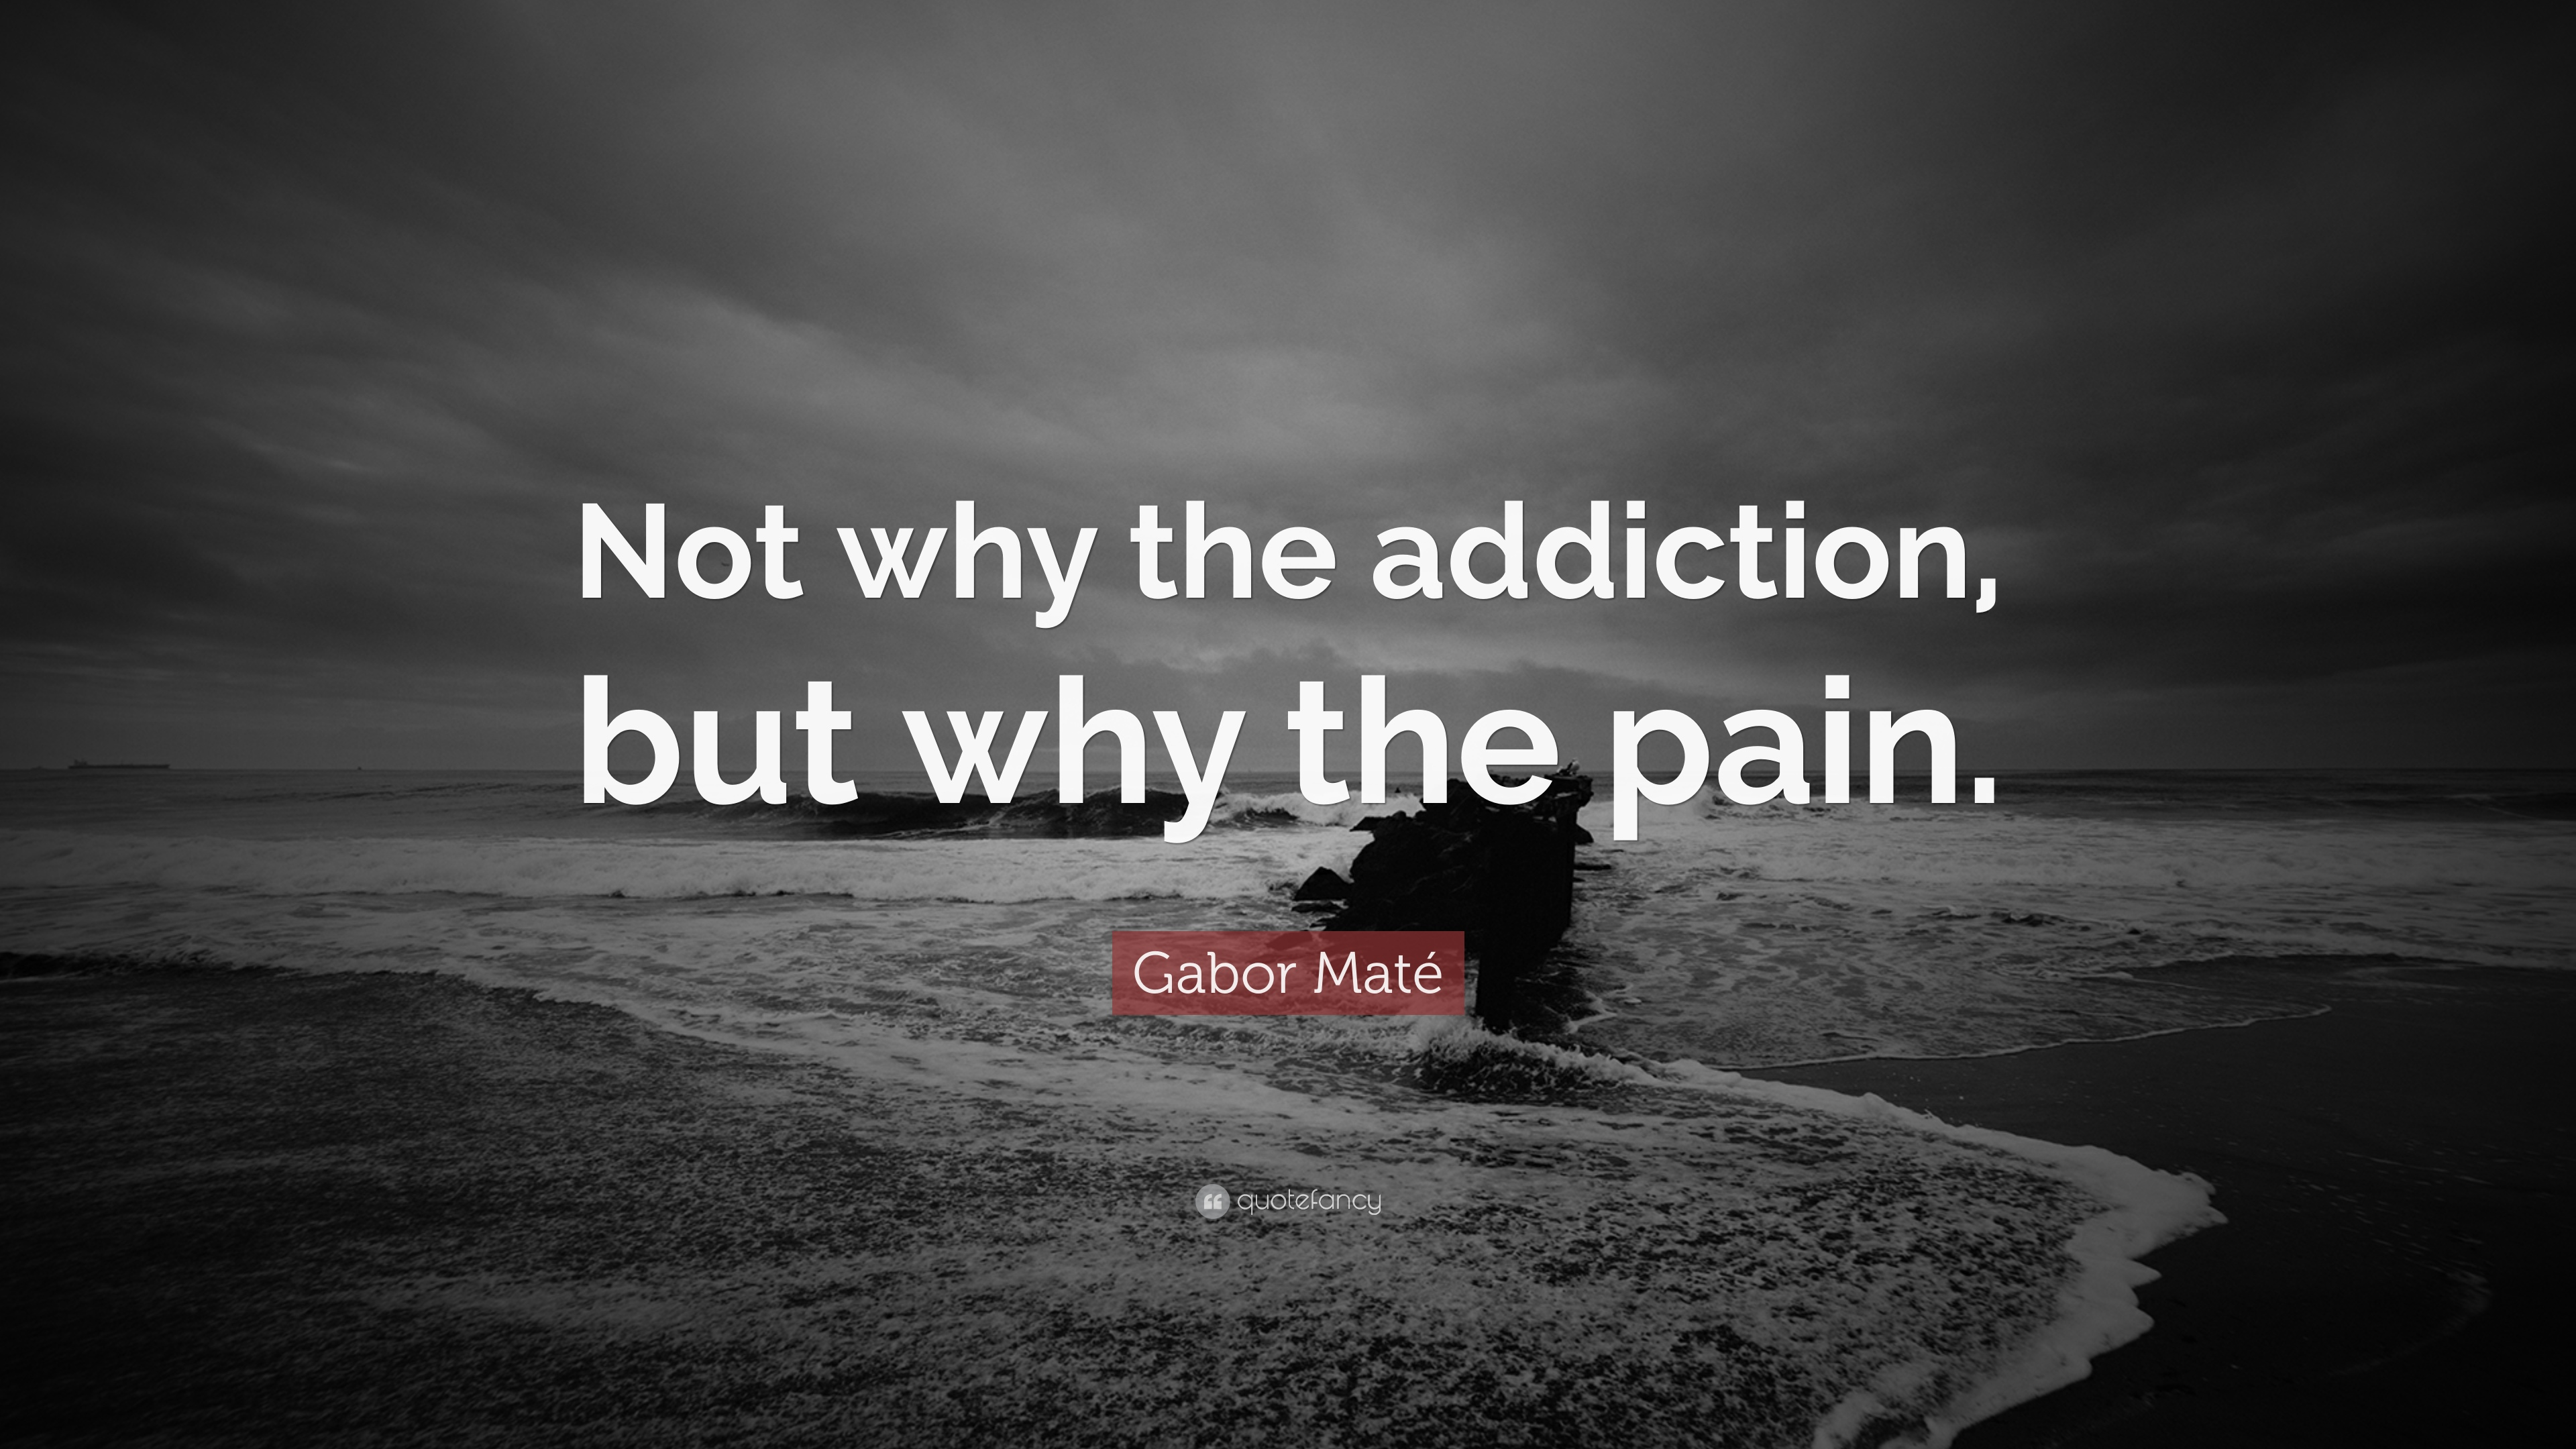 Gabor Maté Quotes (6 wallpapers) - Quotefancy